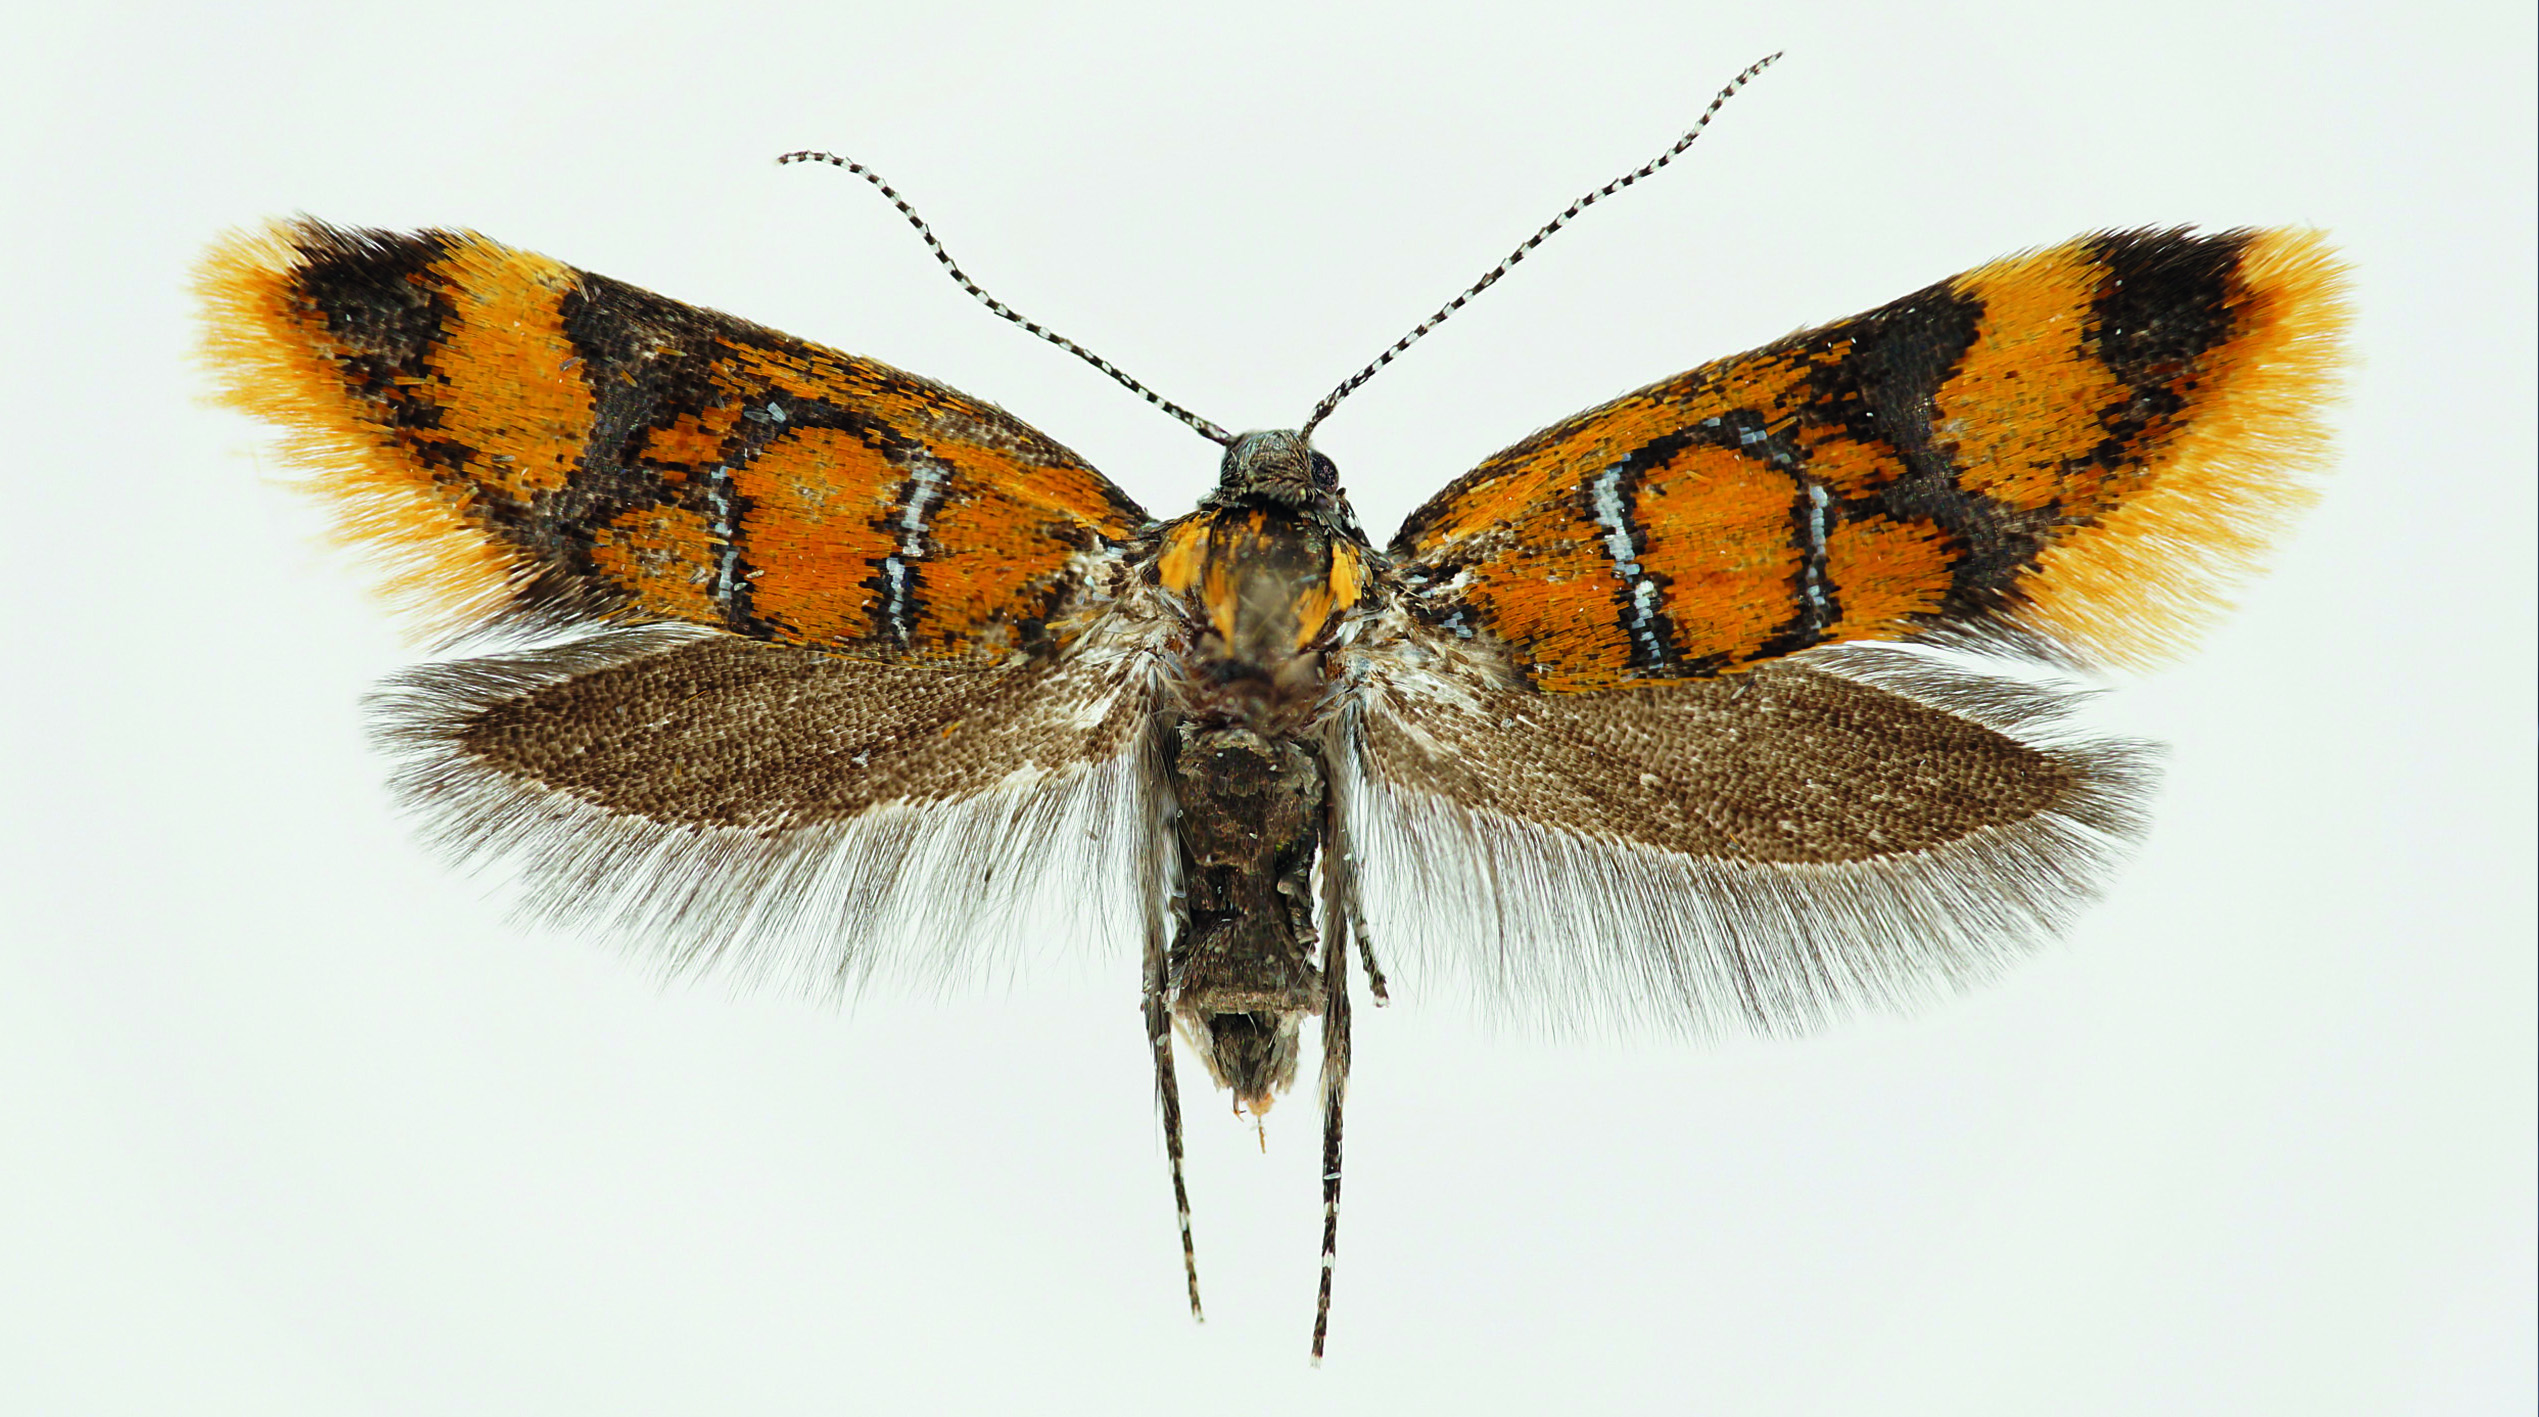 photo: K. Schwabe: Bisigna procerella (Denis & Schiffermüller, 1775)